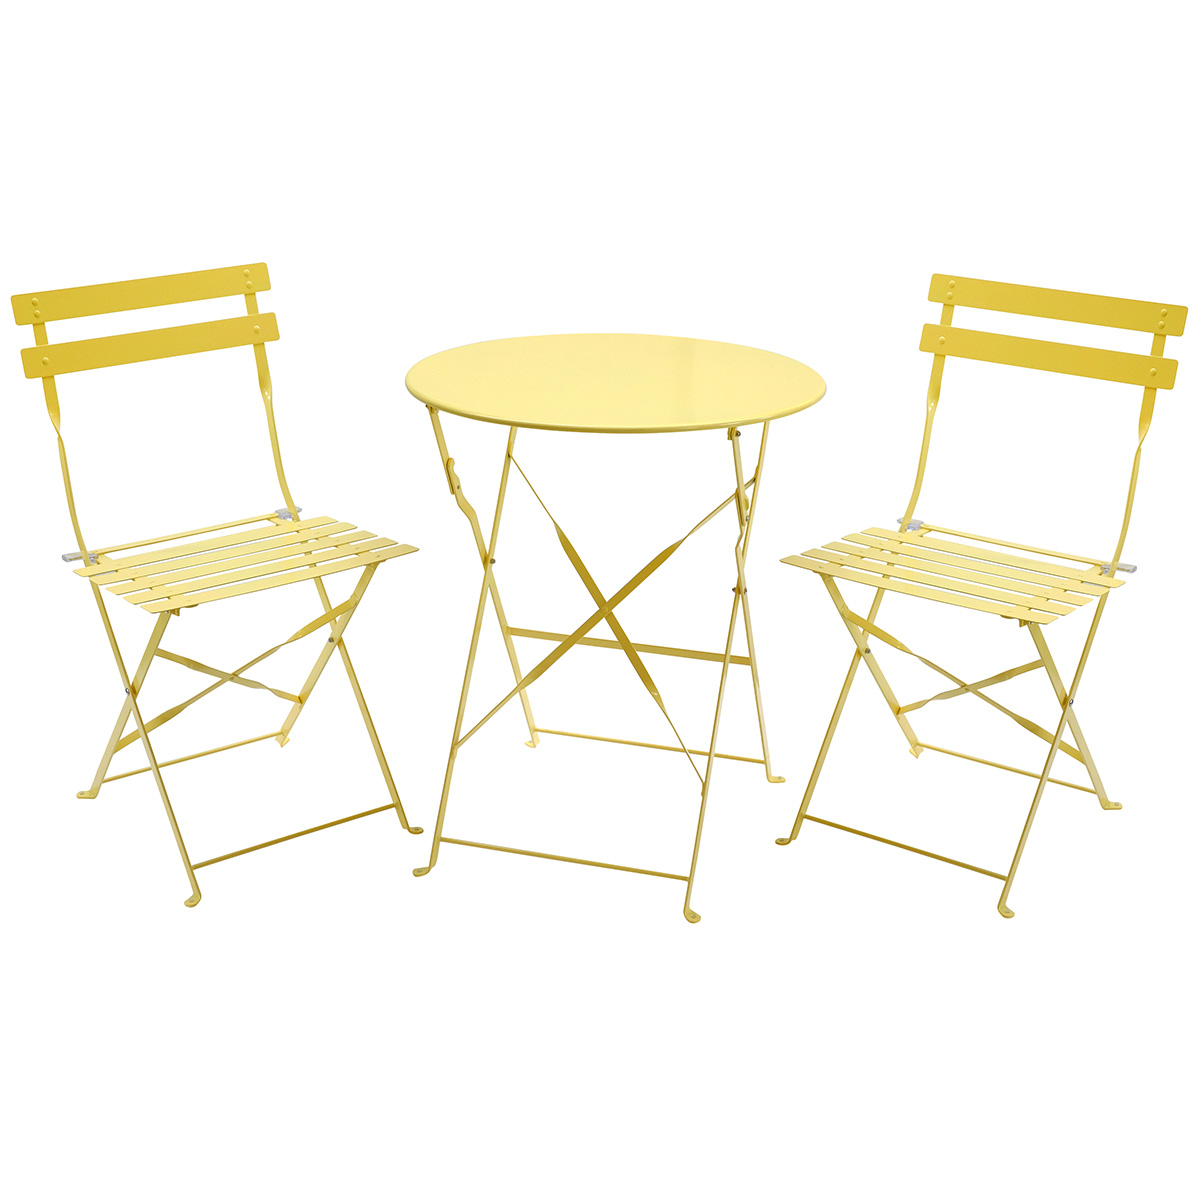 charles bentley 3 piece metal bistro set garden patio table 2 chairs 5 colours. Black Bedroom Furniture Sets. Home Design Ideas